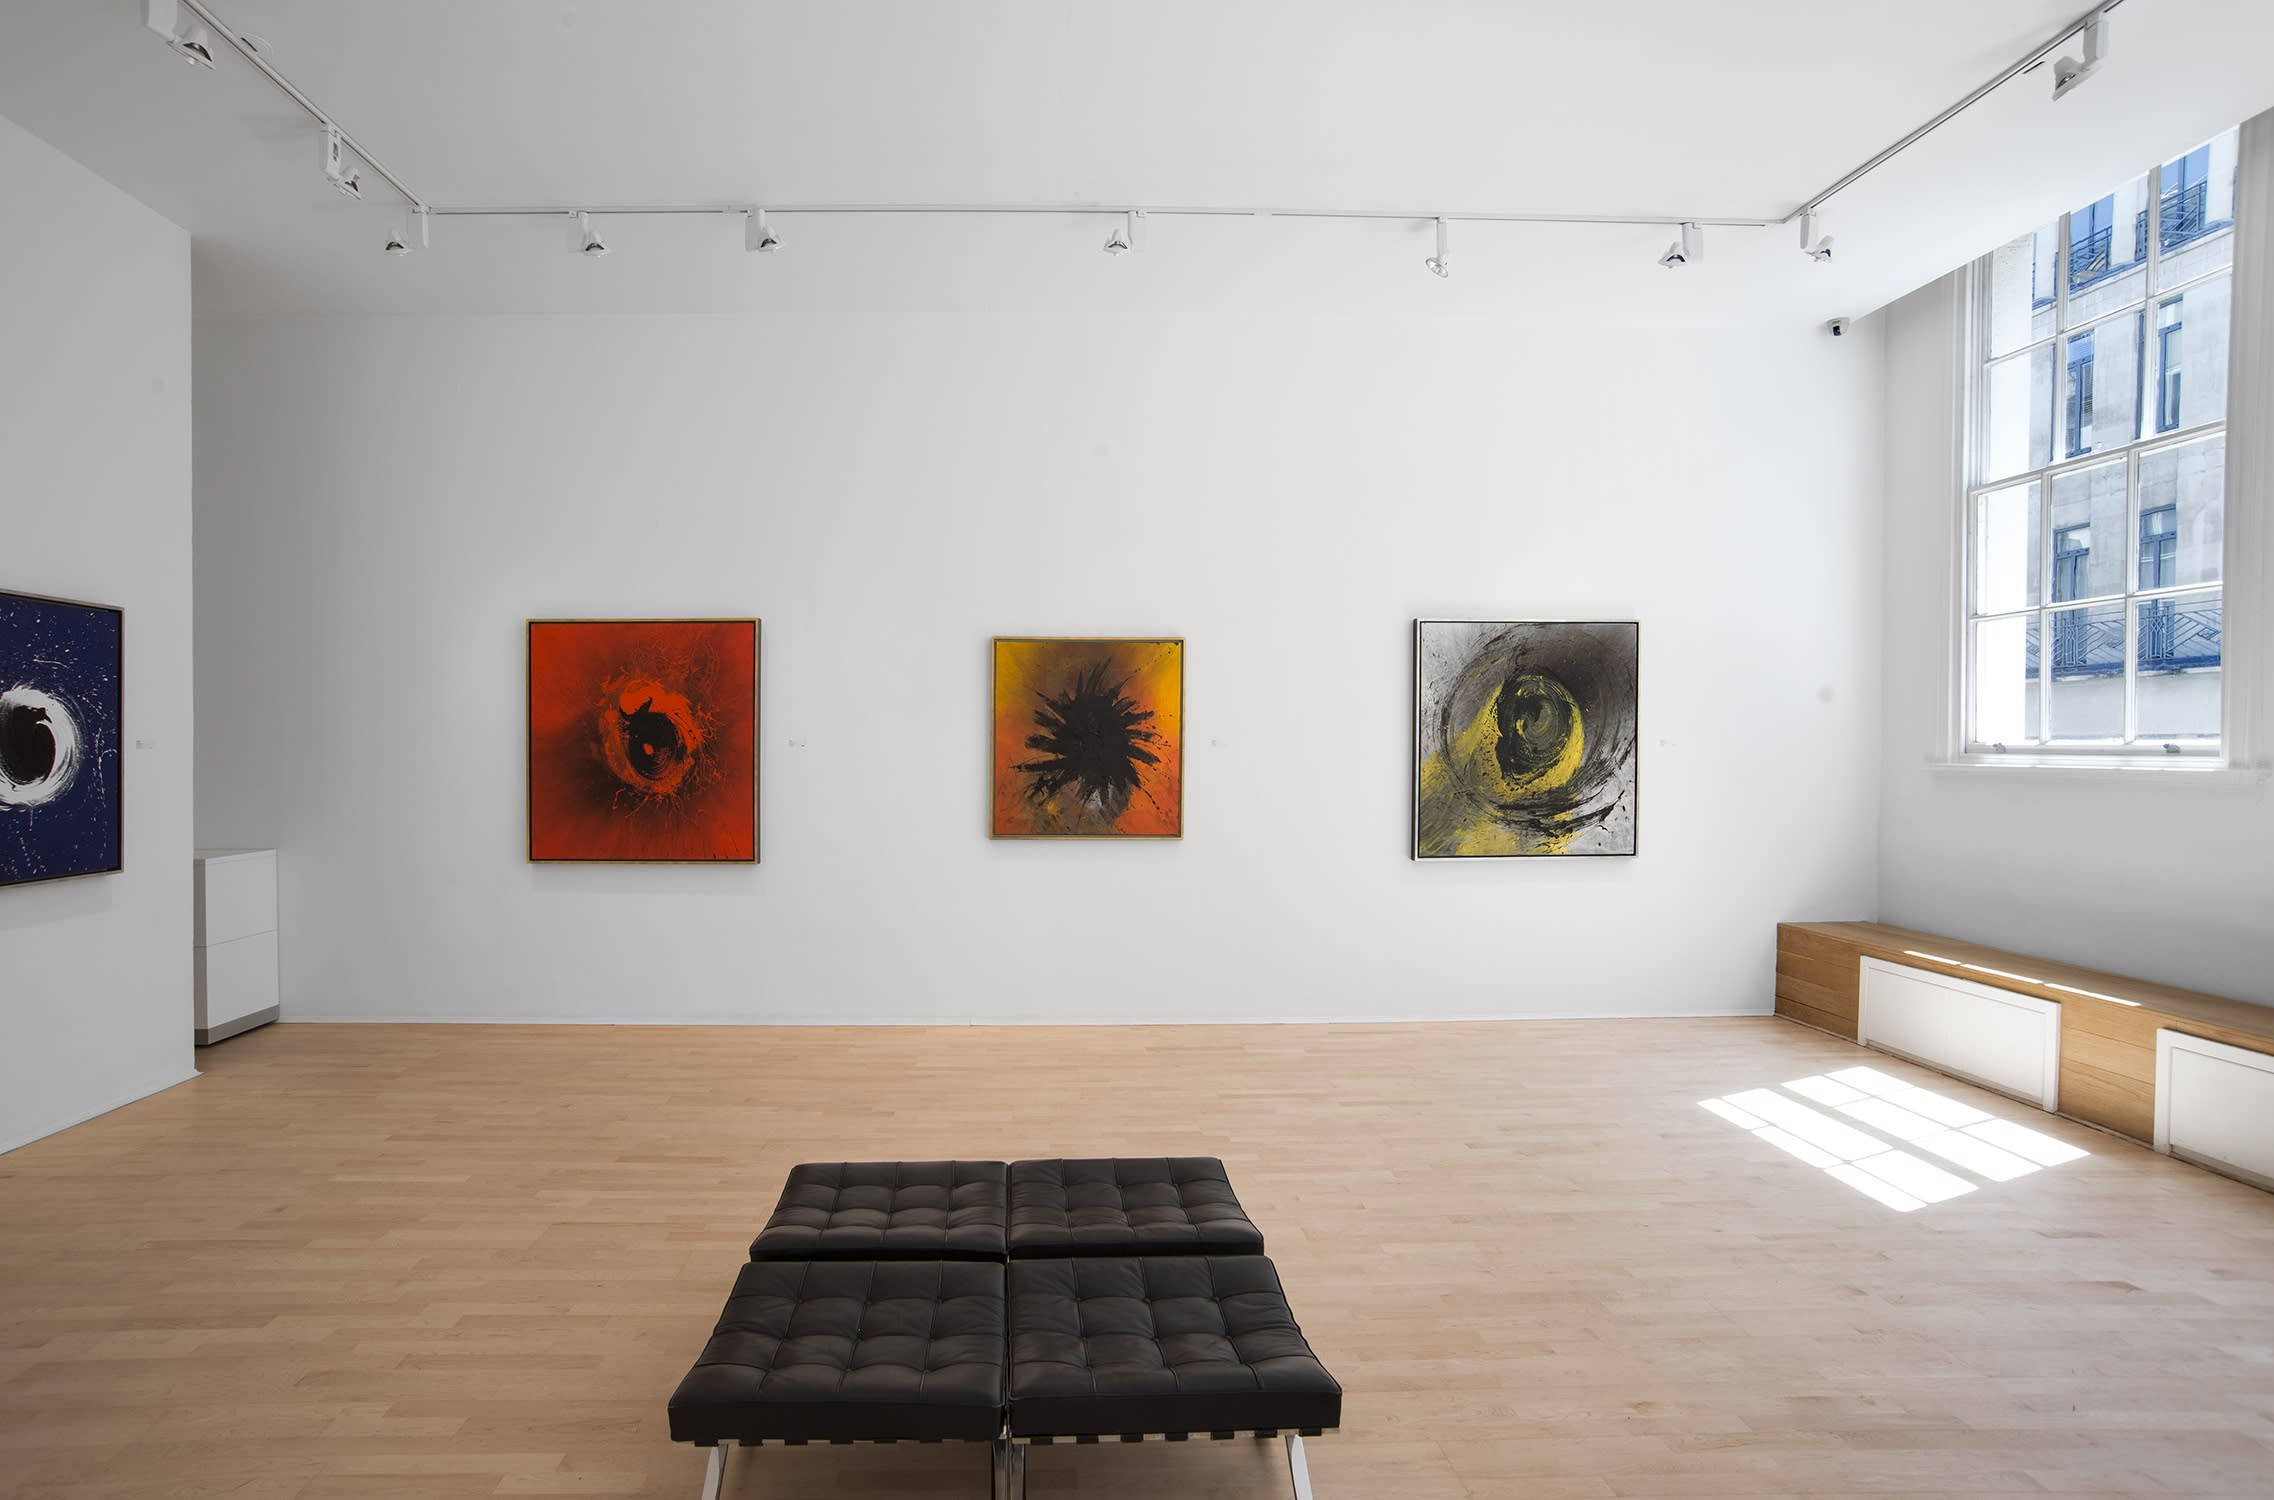 "<span class=""link fancybox-details-link""><a href=""/exhibitions/55/works/image_standalone60/"">View Detail Page</a></span><p>OTTO PIENE 